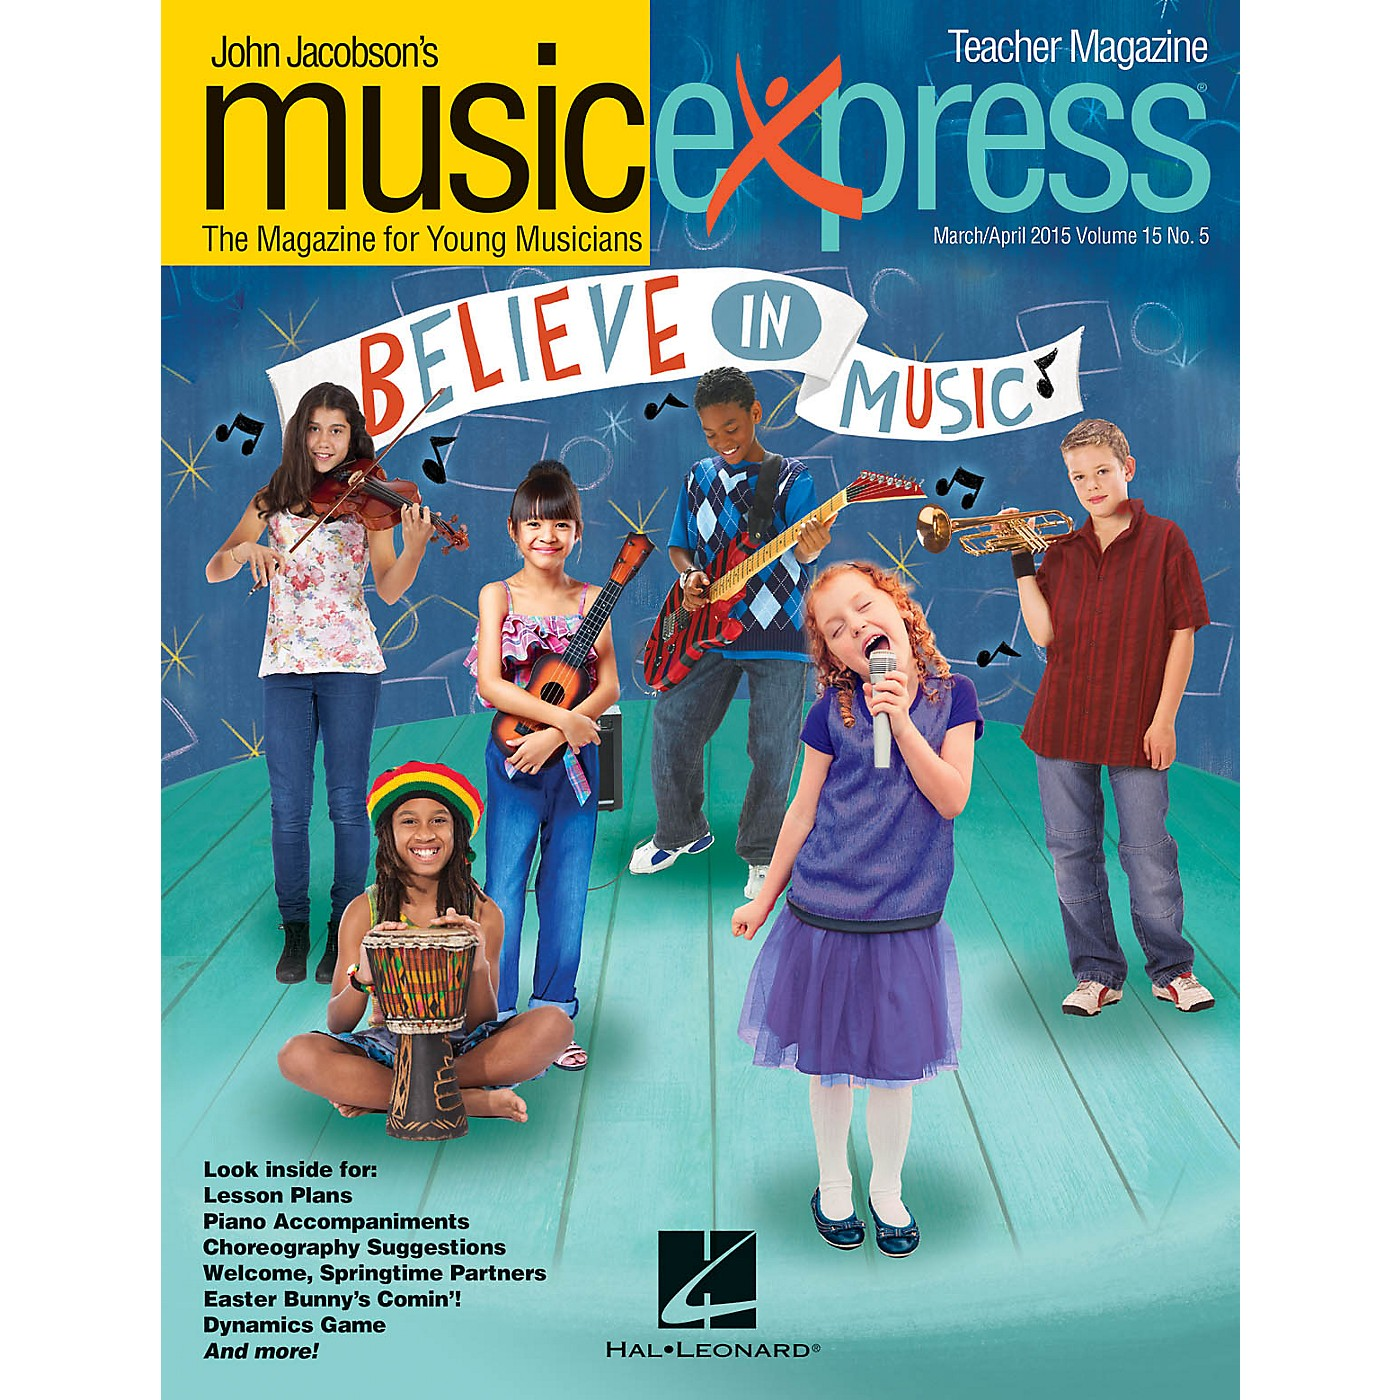 Hal Leonard Believe in Music Vol. 15 No. 5: March/April 2015 Teacher Magazine w/CD Arranged by Emily Crocker thumbnail